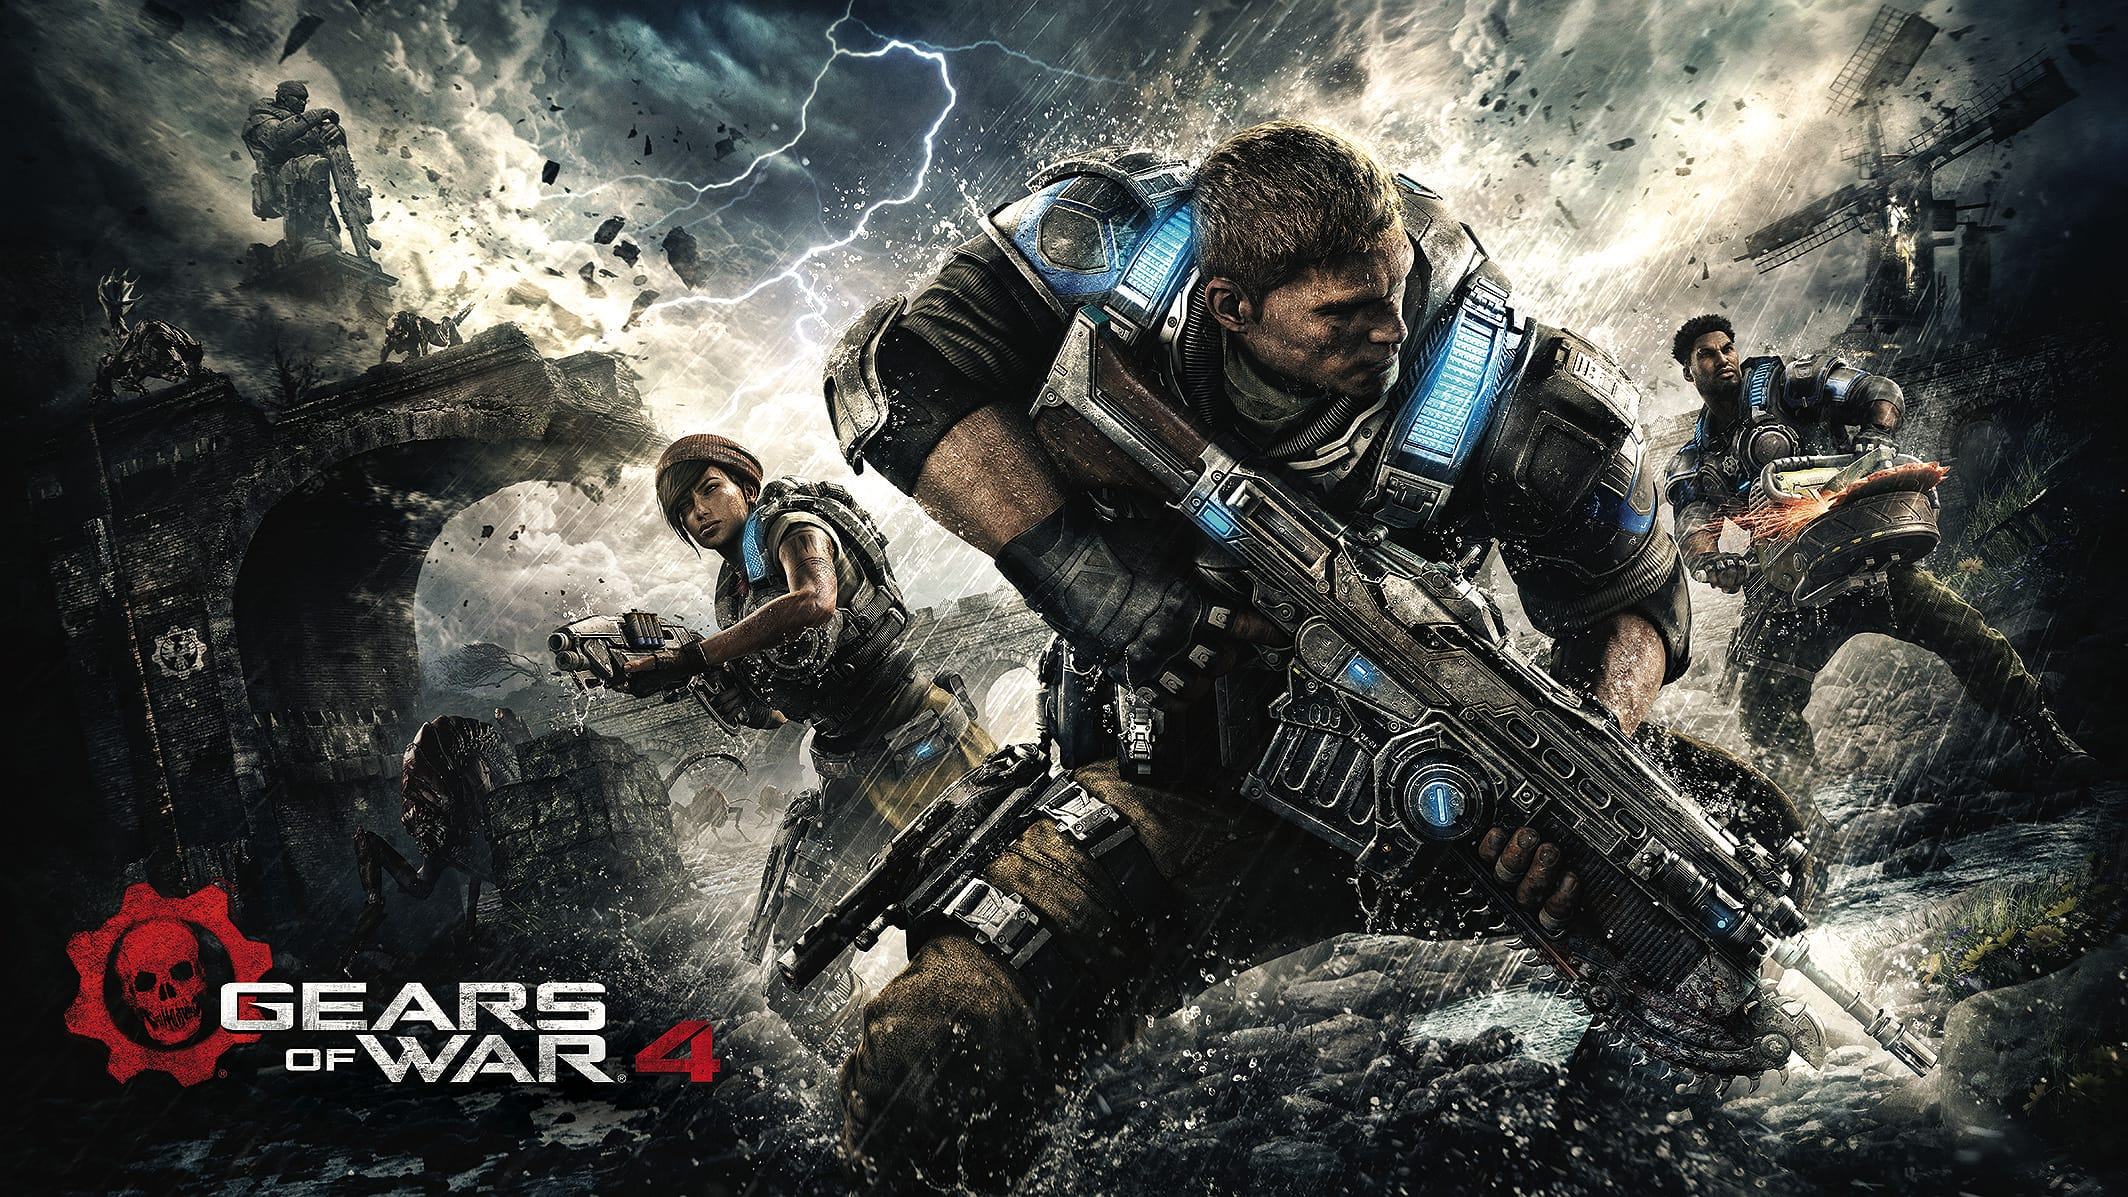 gears-4-cover-art